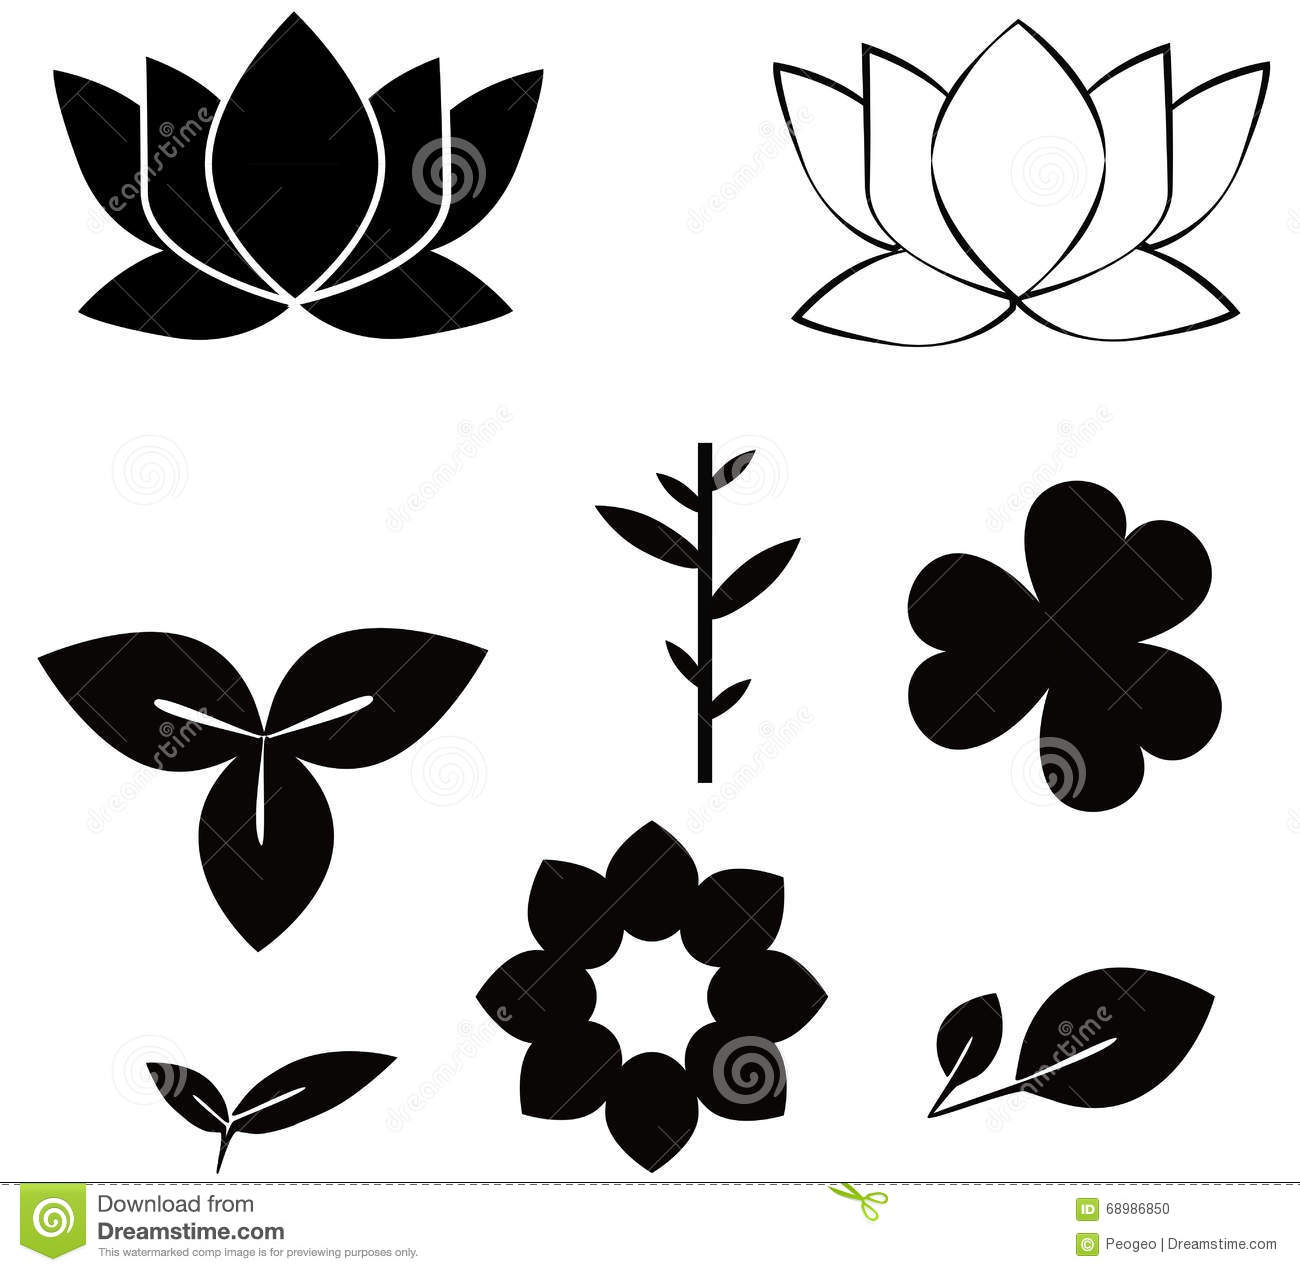 Flowers shape black silhouette set illustrations on w stock vector download comp mightylinksfo